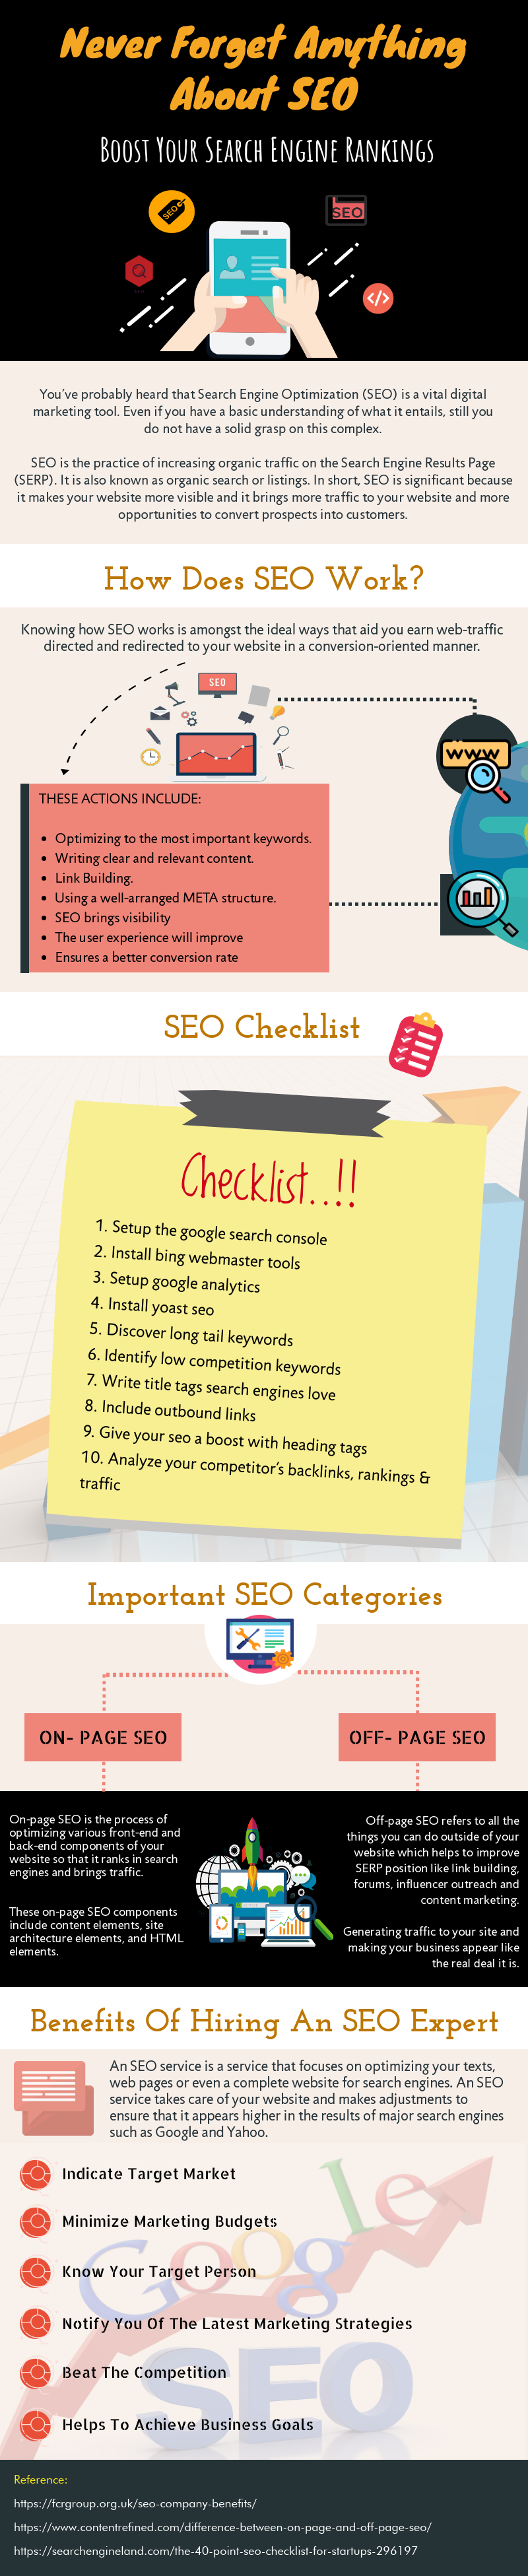 Never Forget Anything about SEO Checklist